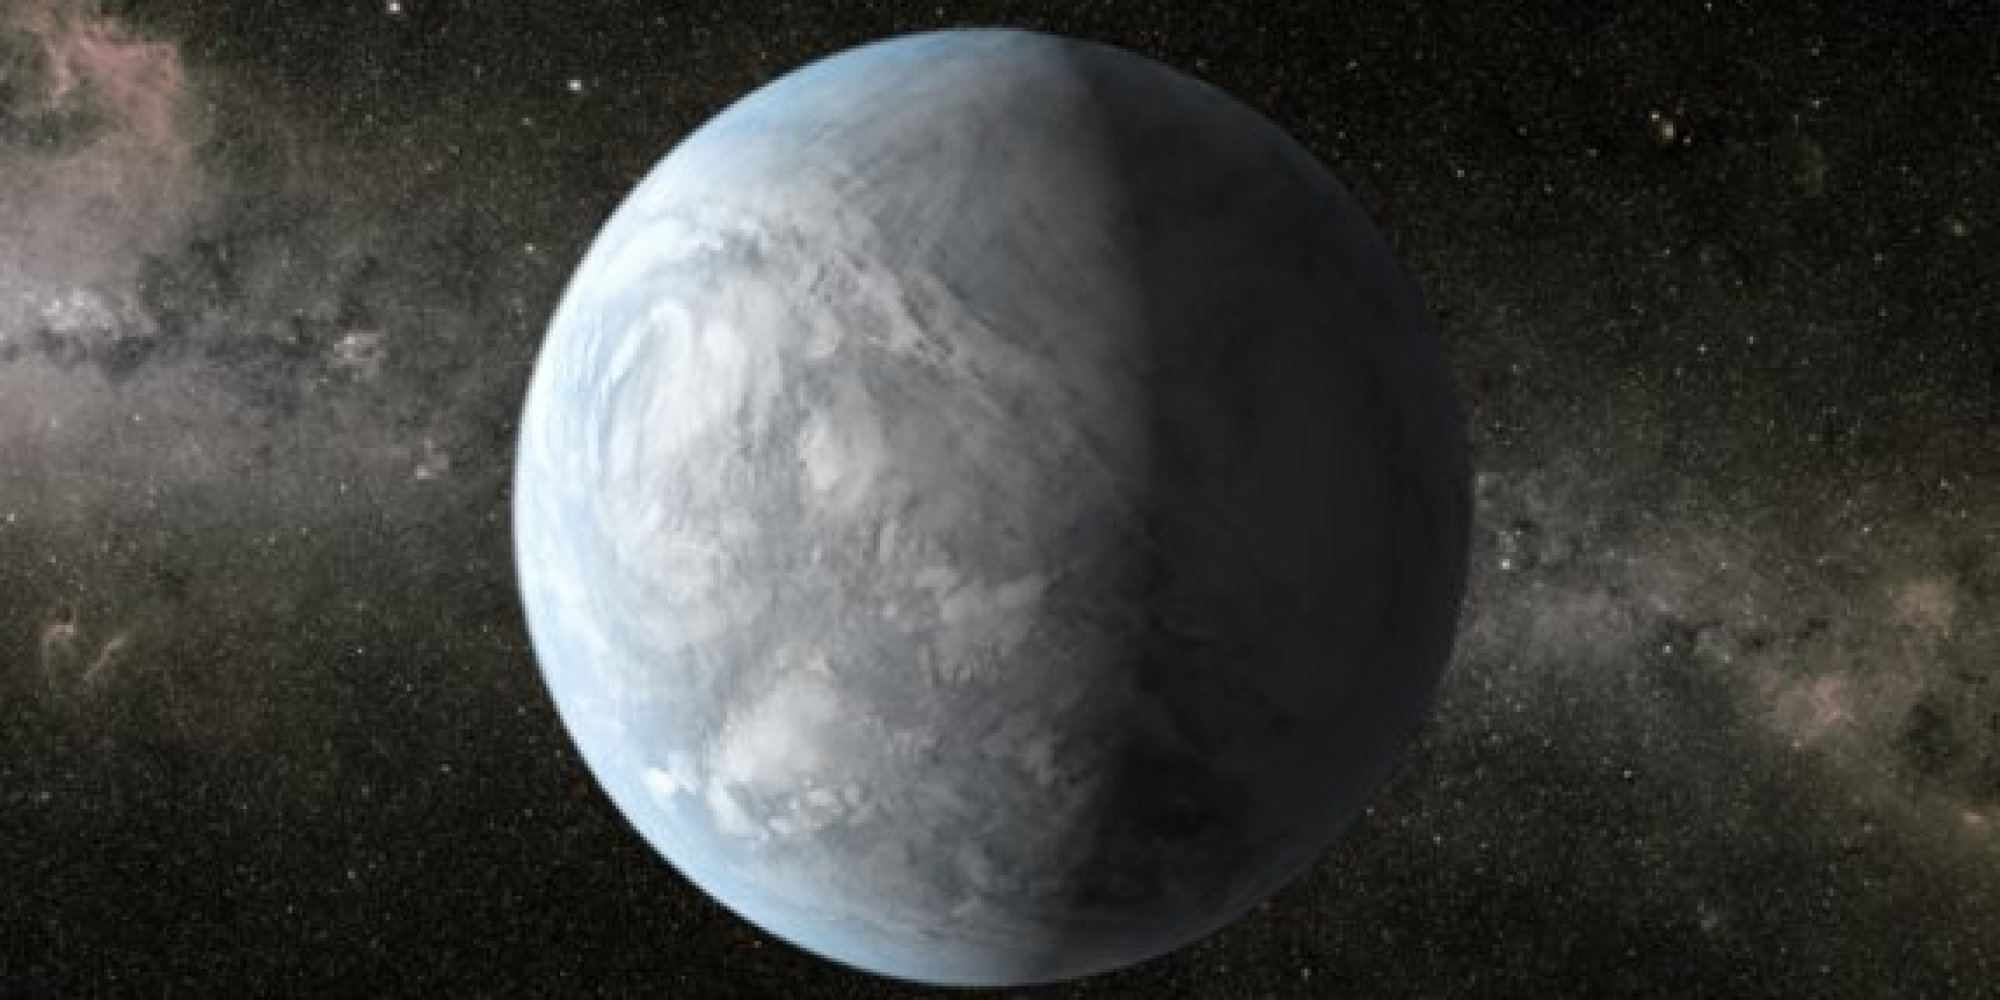 Super-Earth Planets May Have Earthlike Oceans & Continents ...